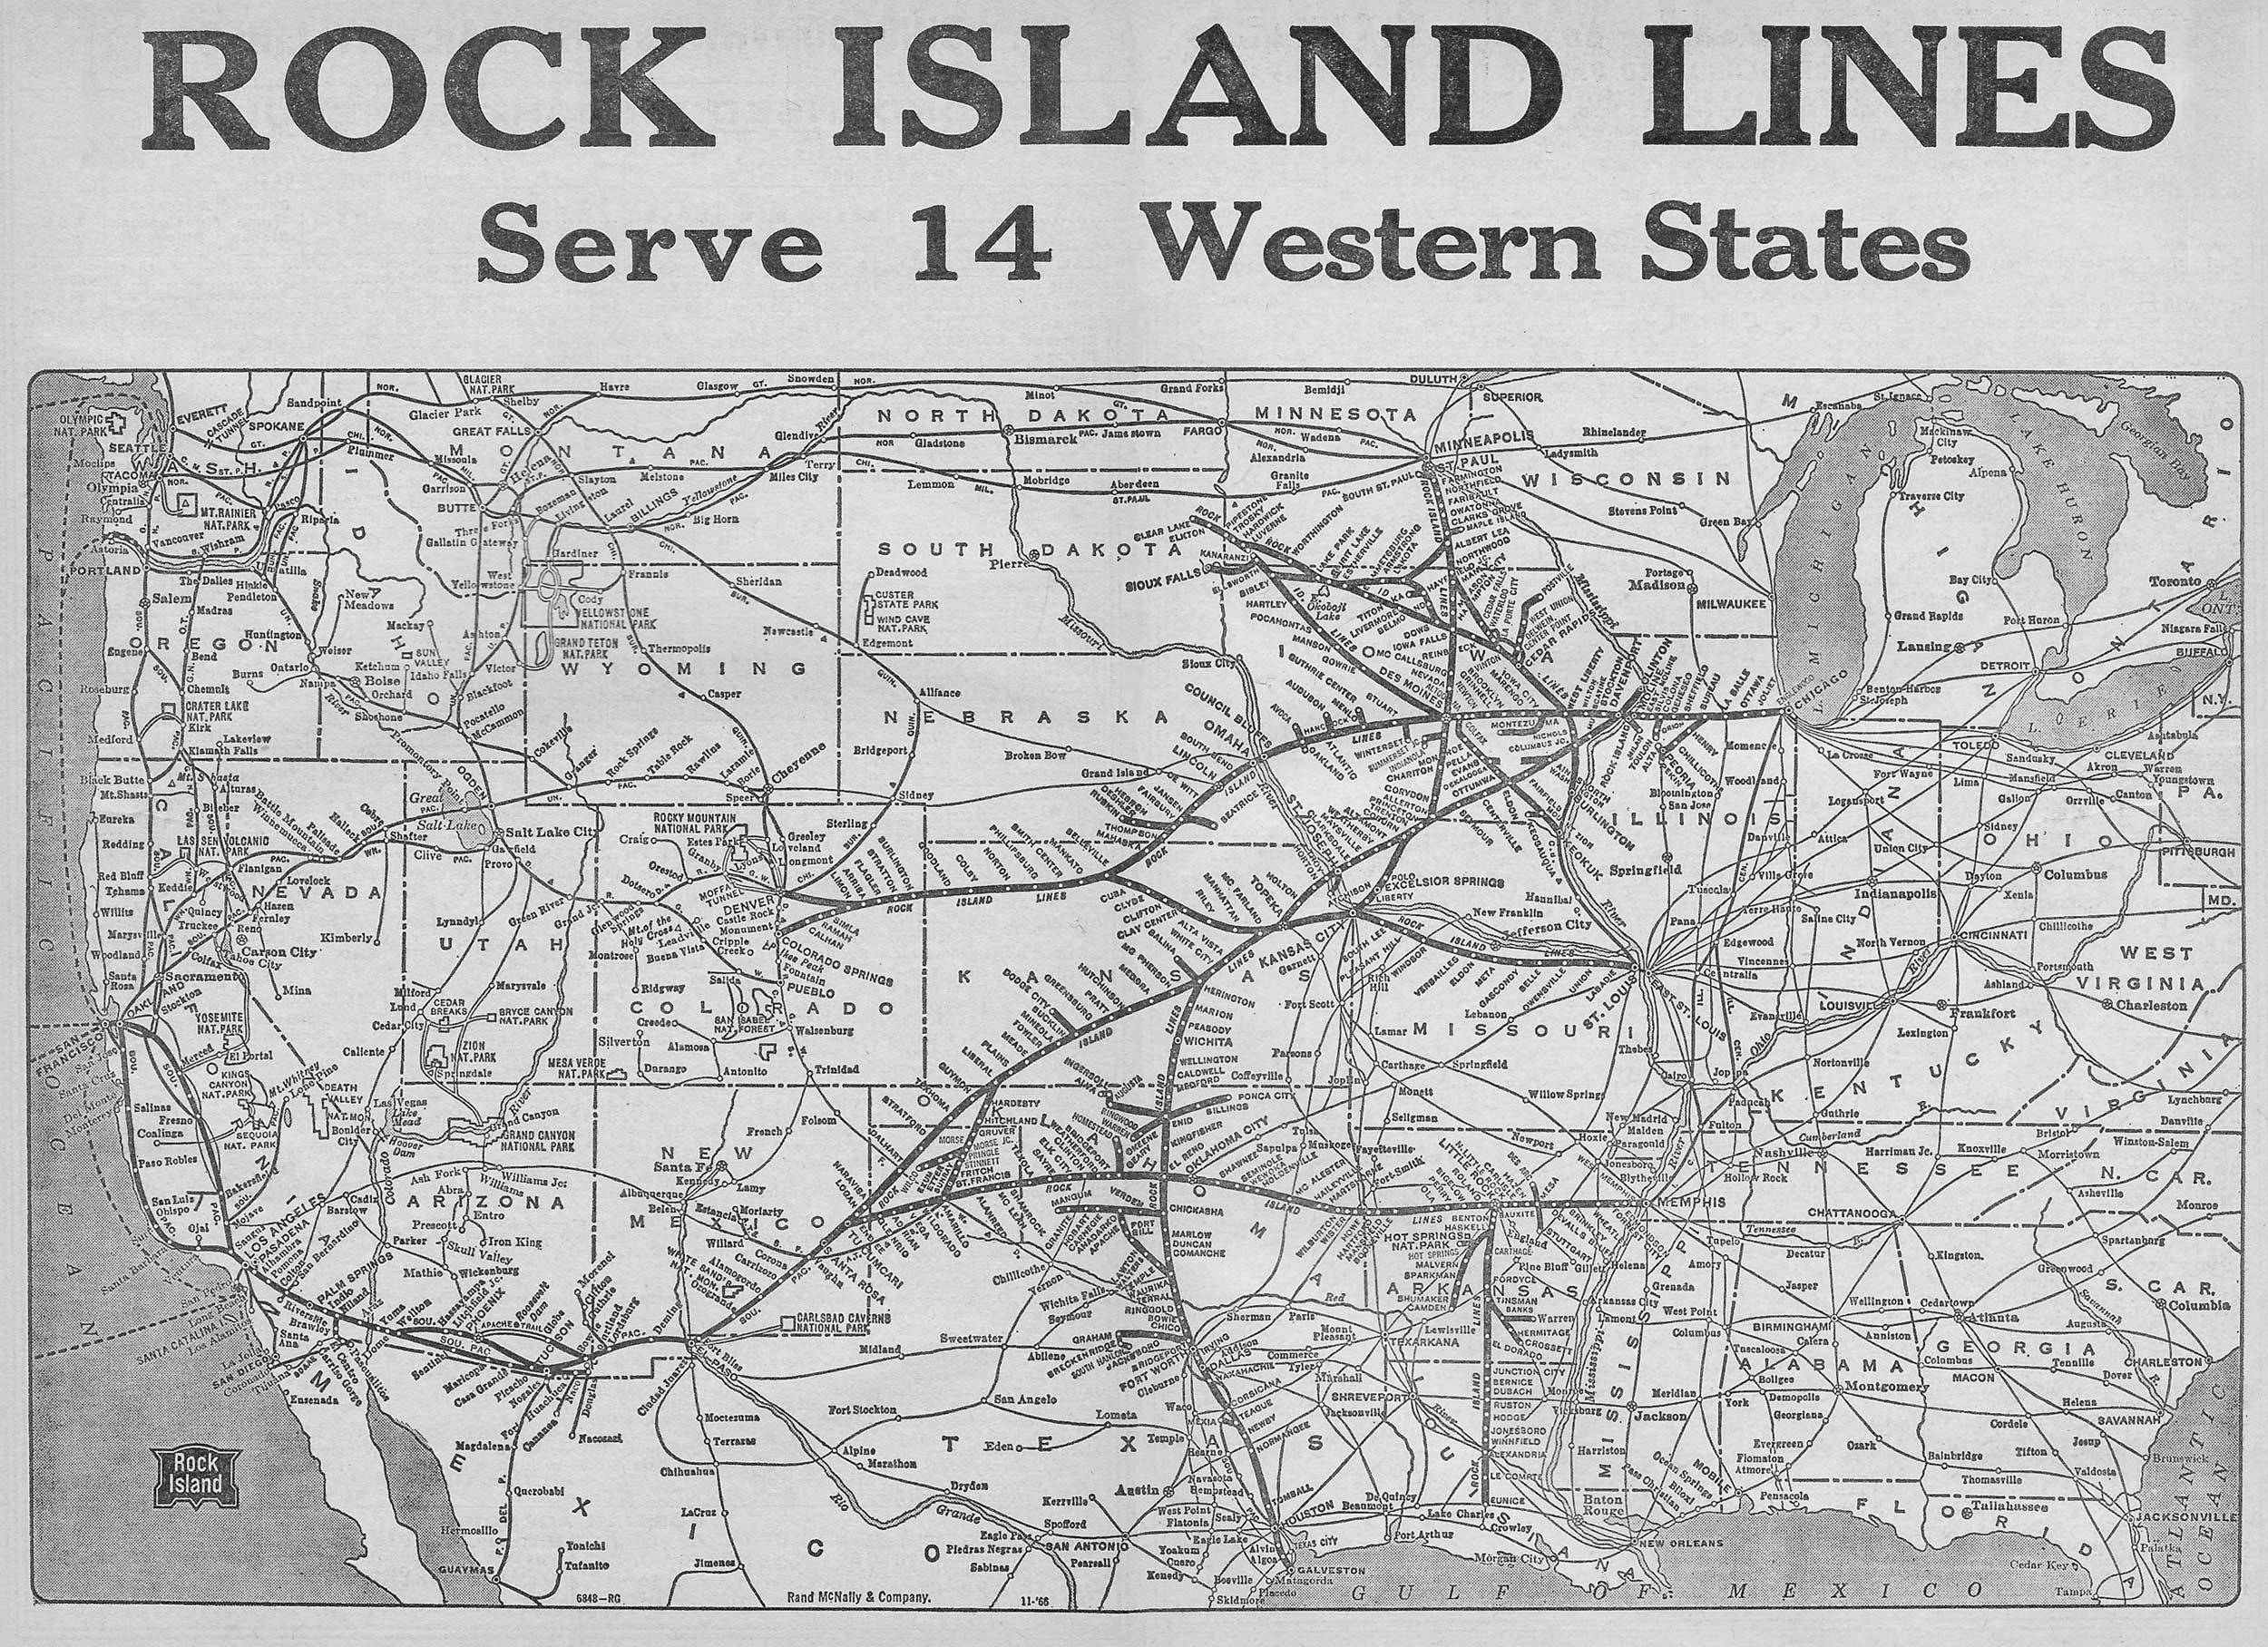 The Chicago Rock Island and Pacific Railroad